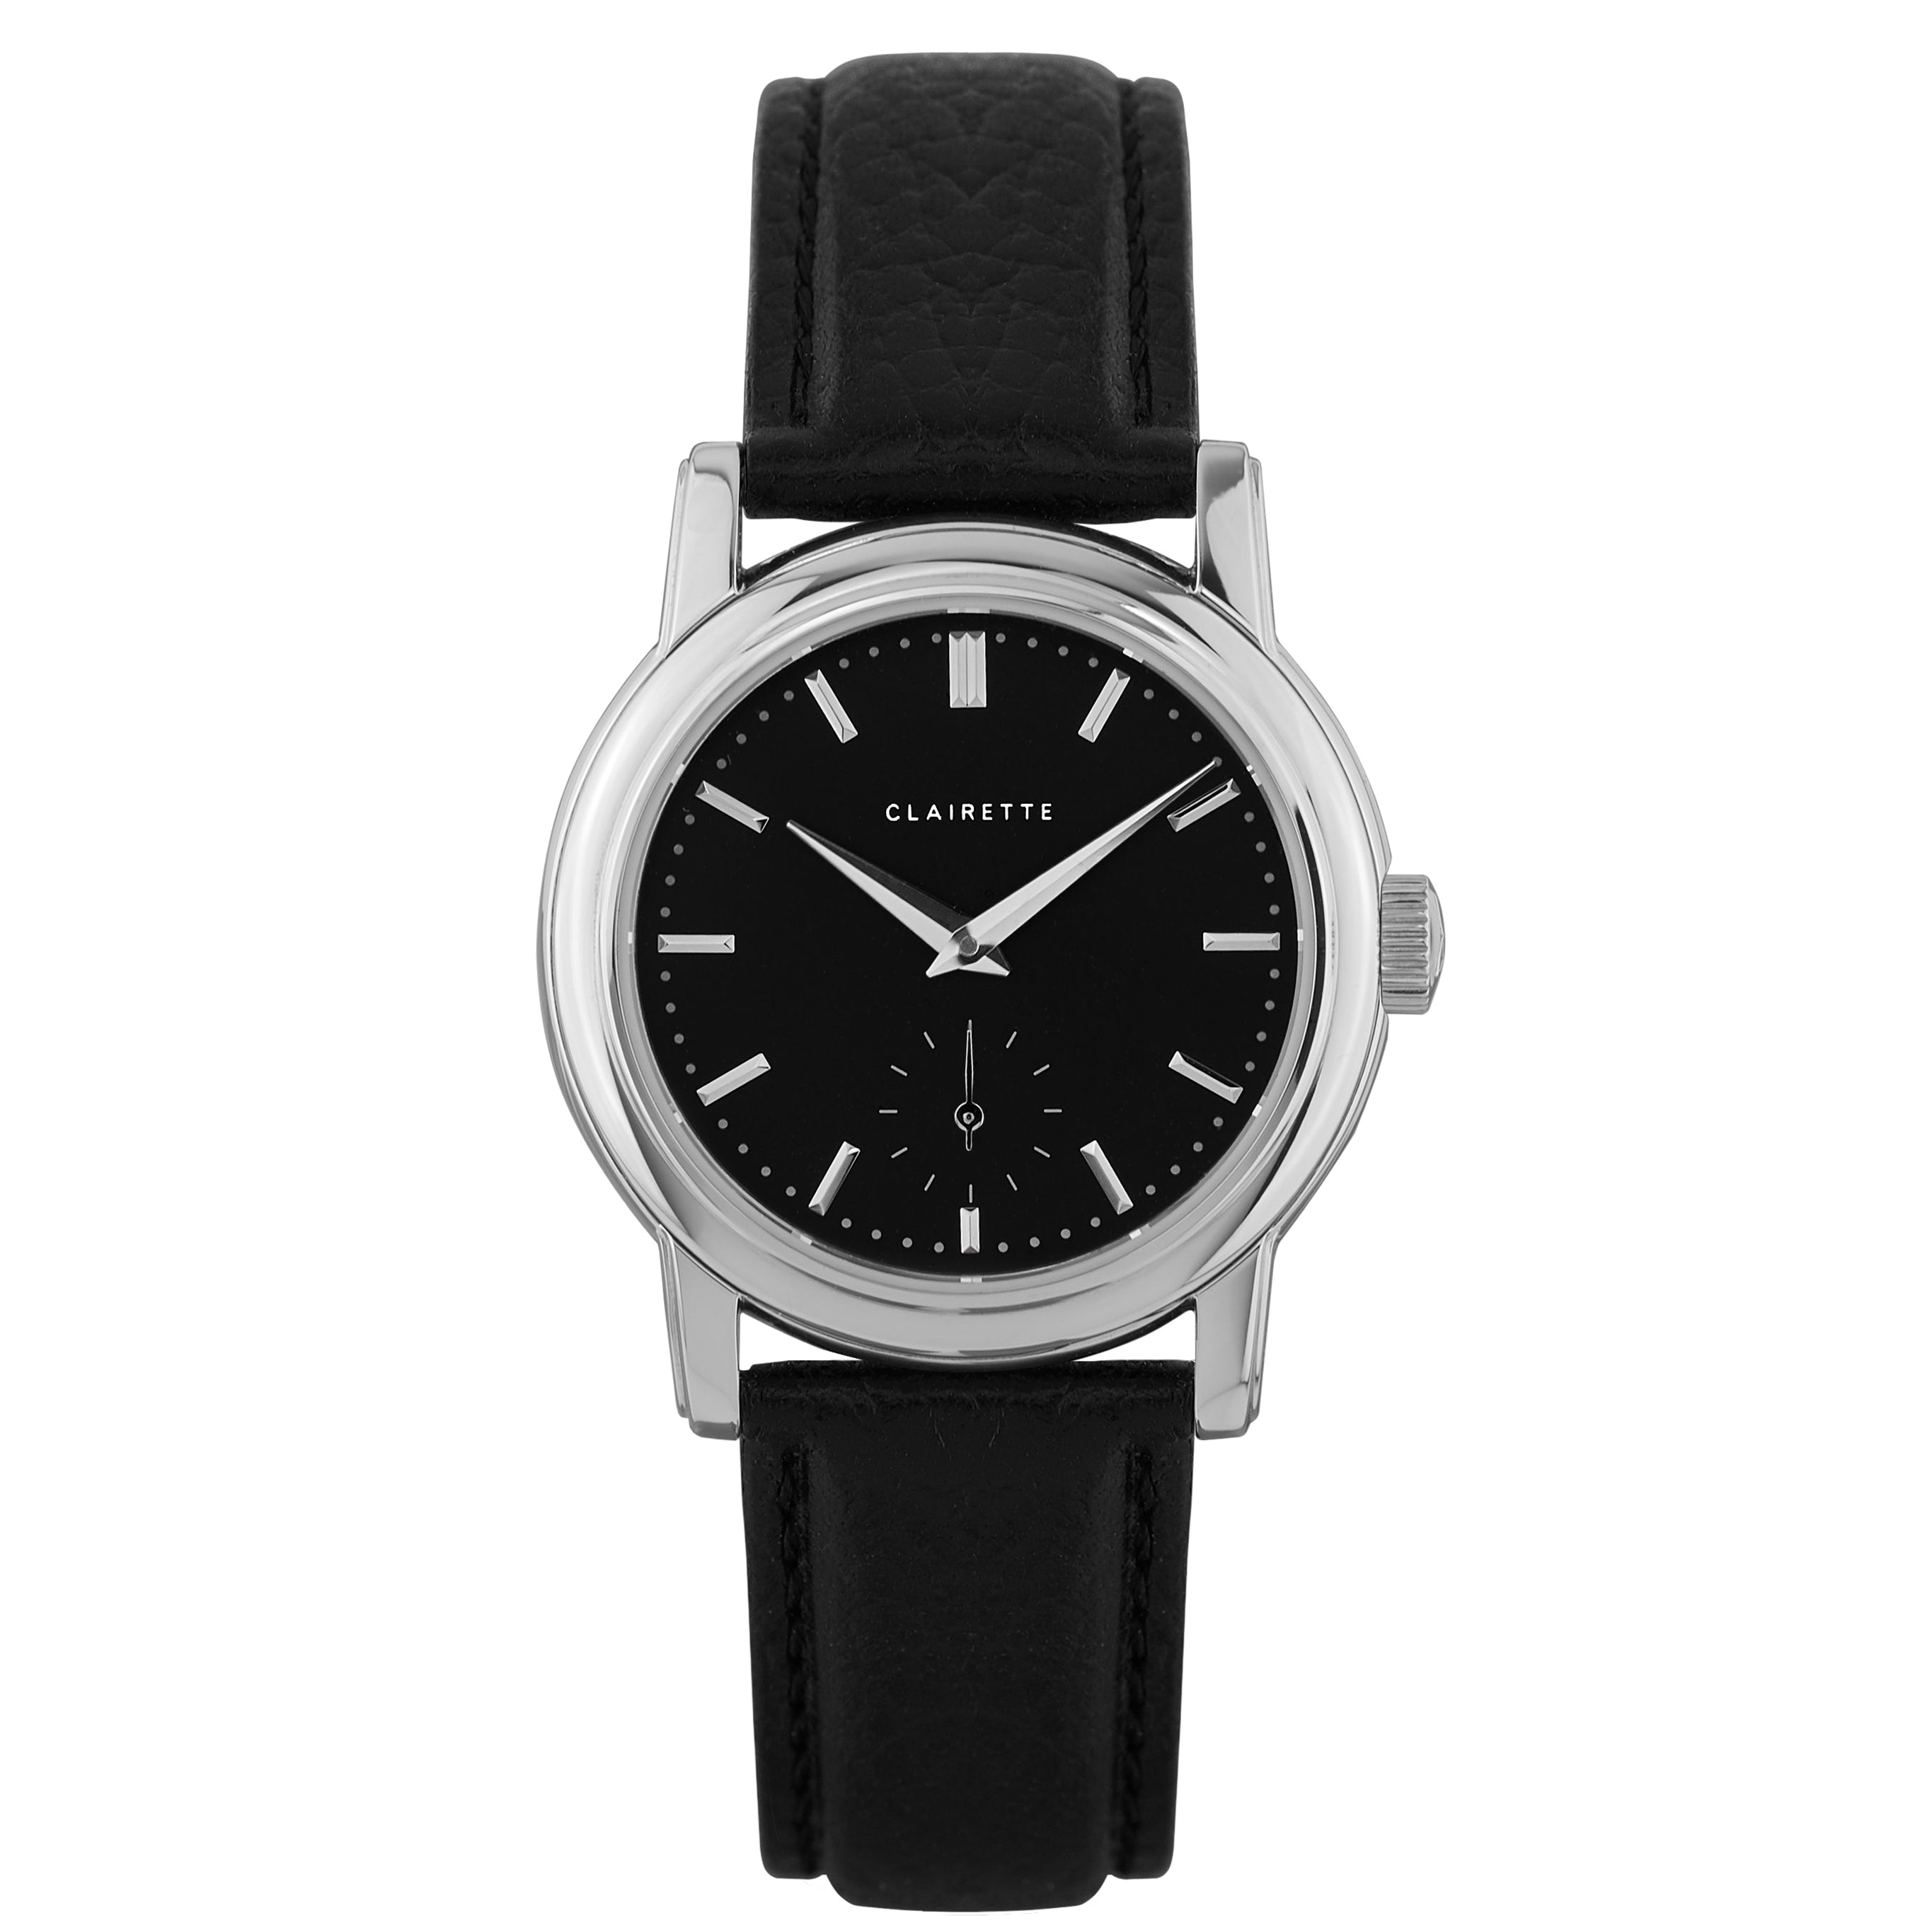 Women's Stainless Steel Watch w/ Black Dial & Black Strap